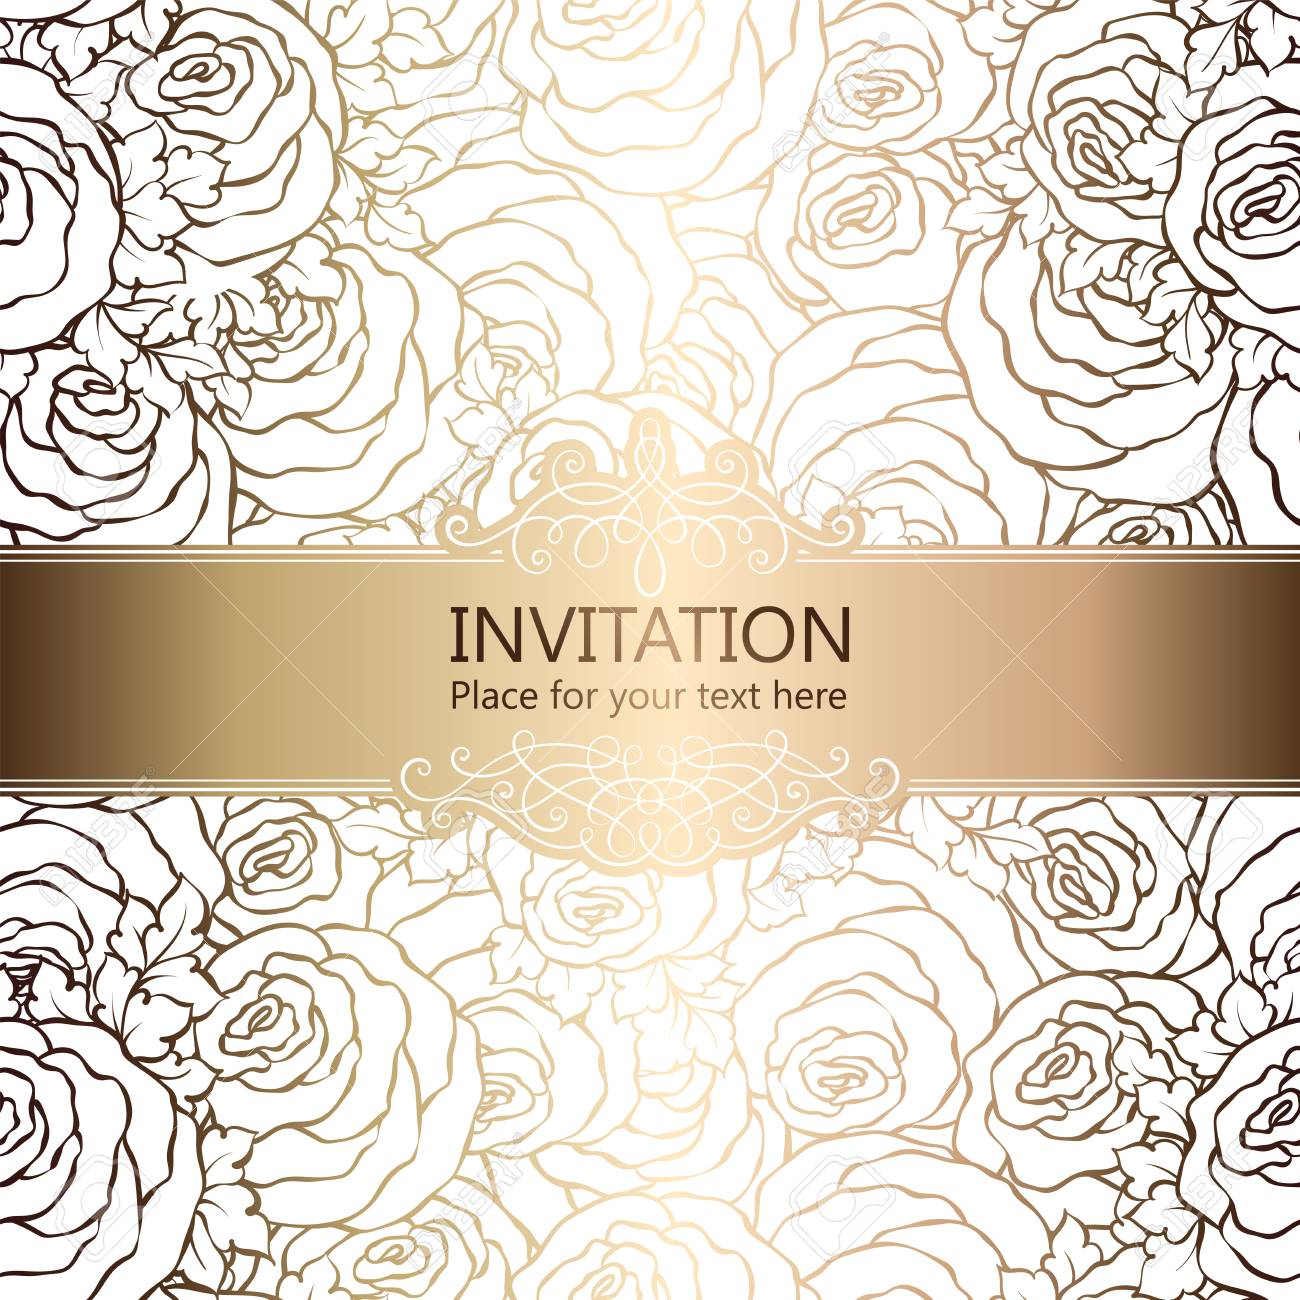 Abstract Background With Roses Luxury White And Gold Vintage